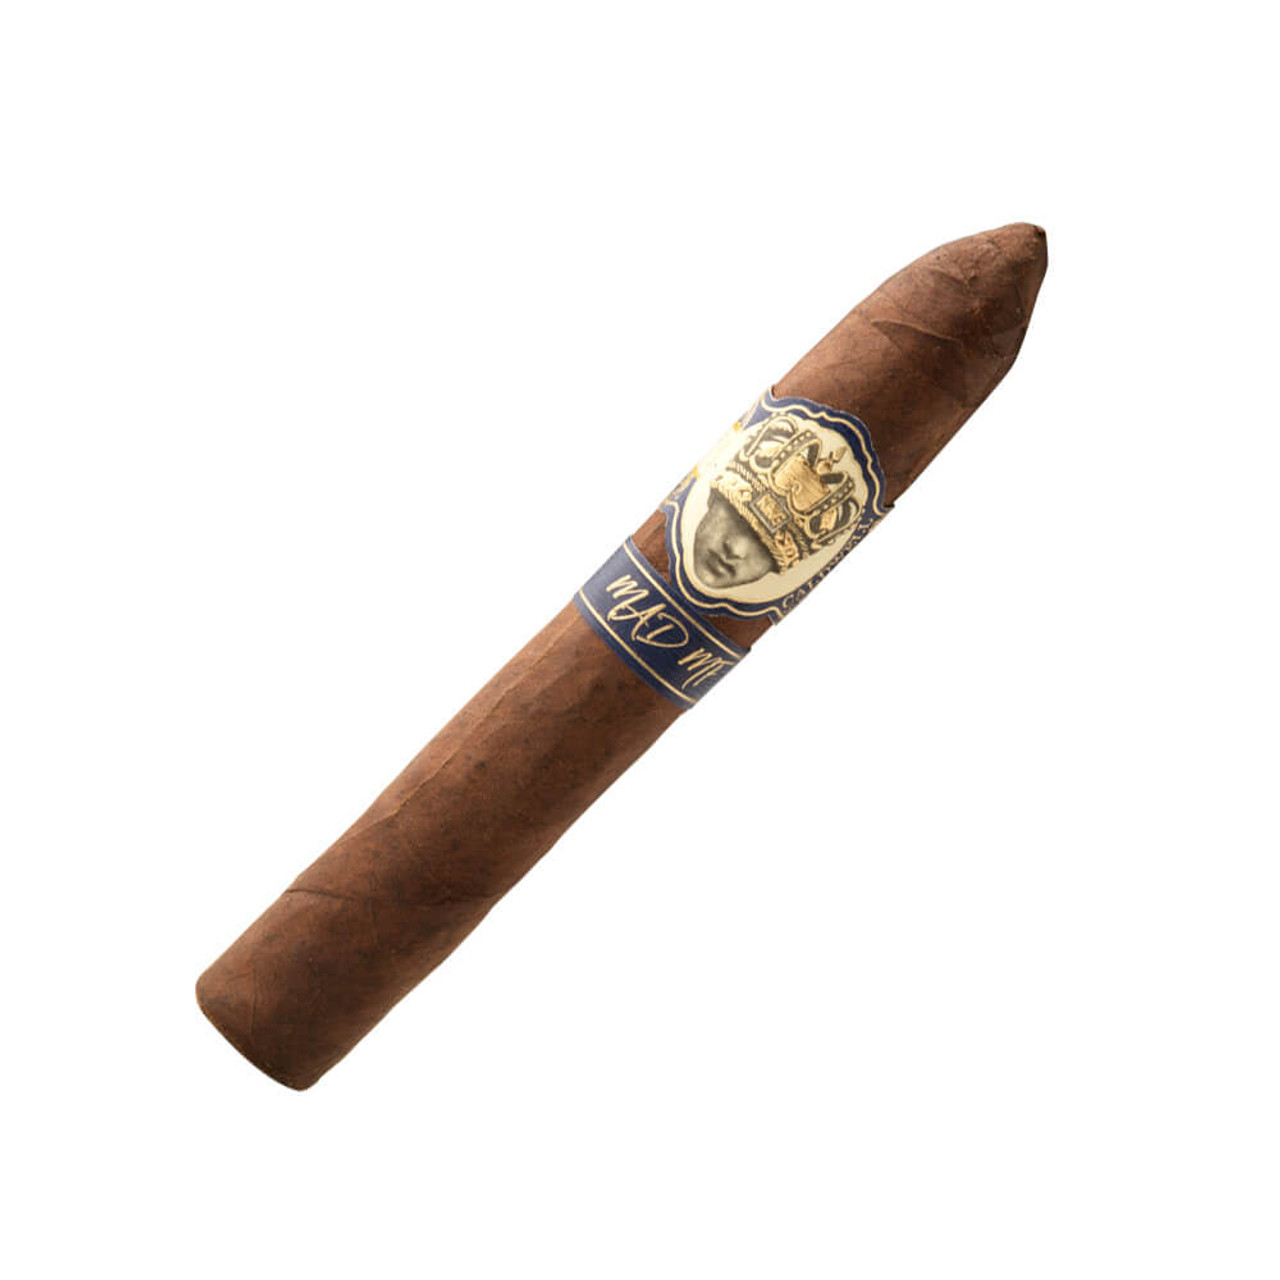 Caldwell Long Live The King Belicoso Cigars - 5.52 x 52 (Box of 10)